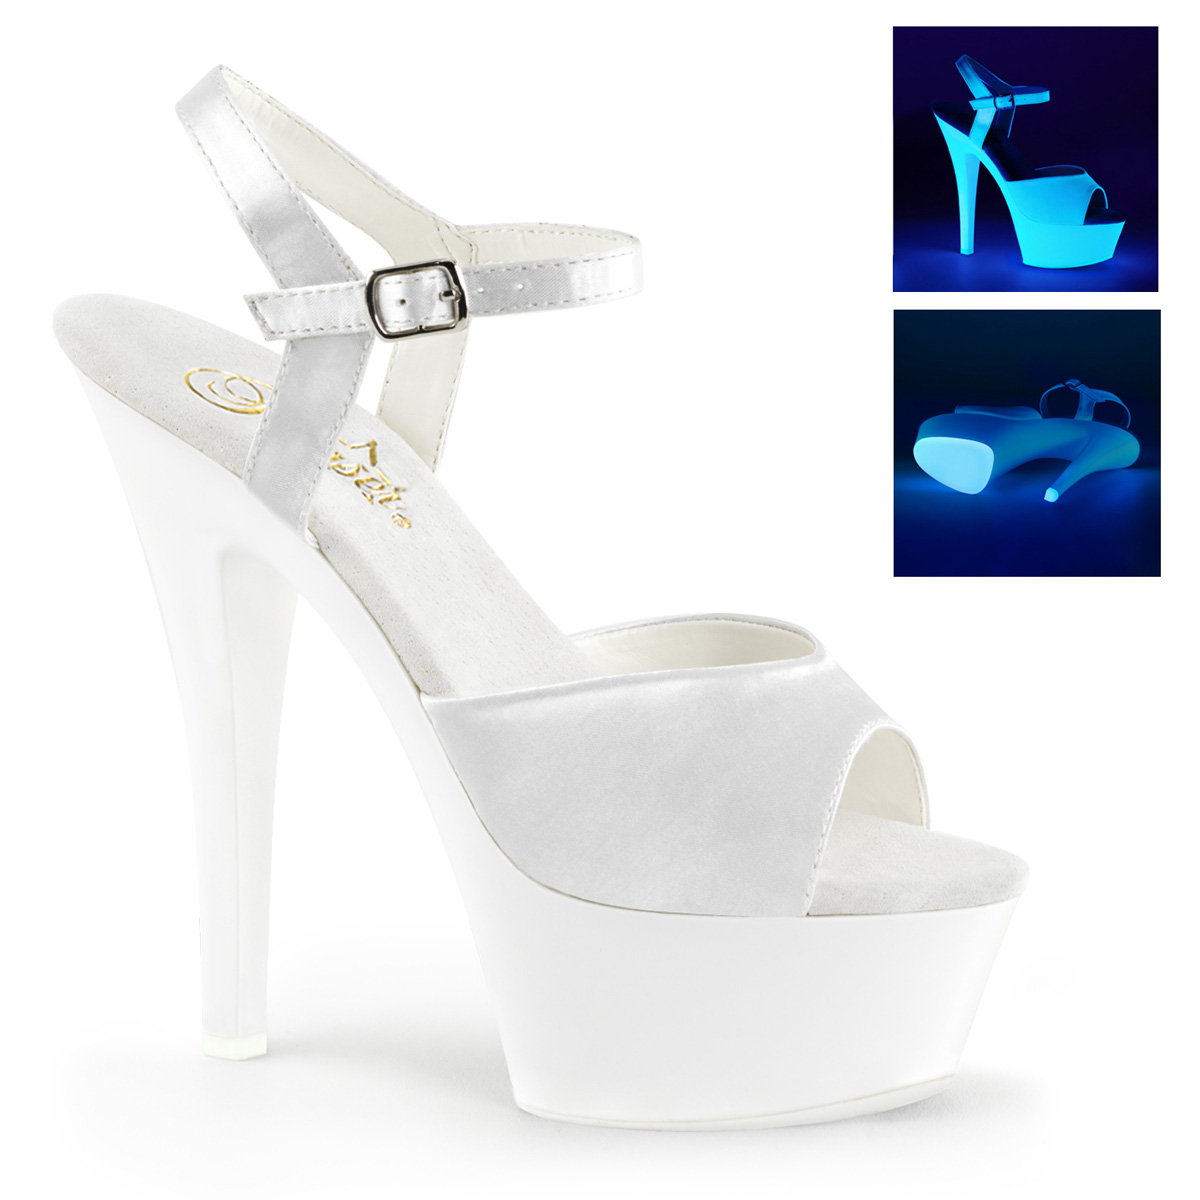 Pleaser Platform Sandals Blacklight Ankle Strap Shoes Kiss-209uv Neon White  12. About this product. Picture 1 of 2; Picture 2 of 2